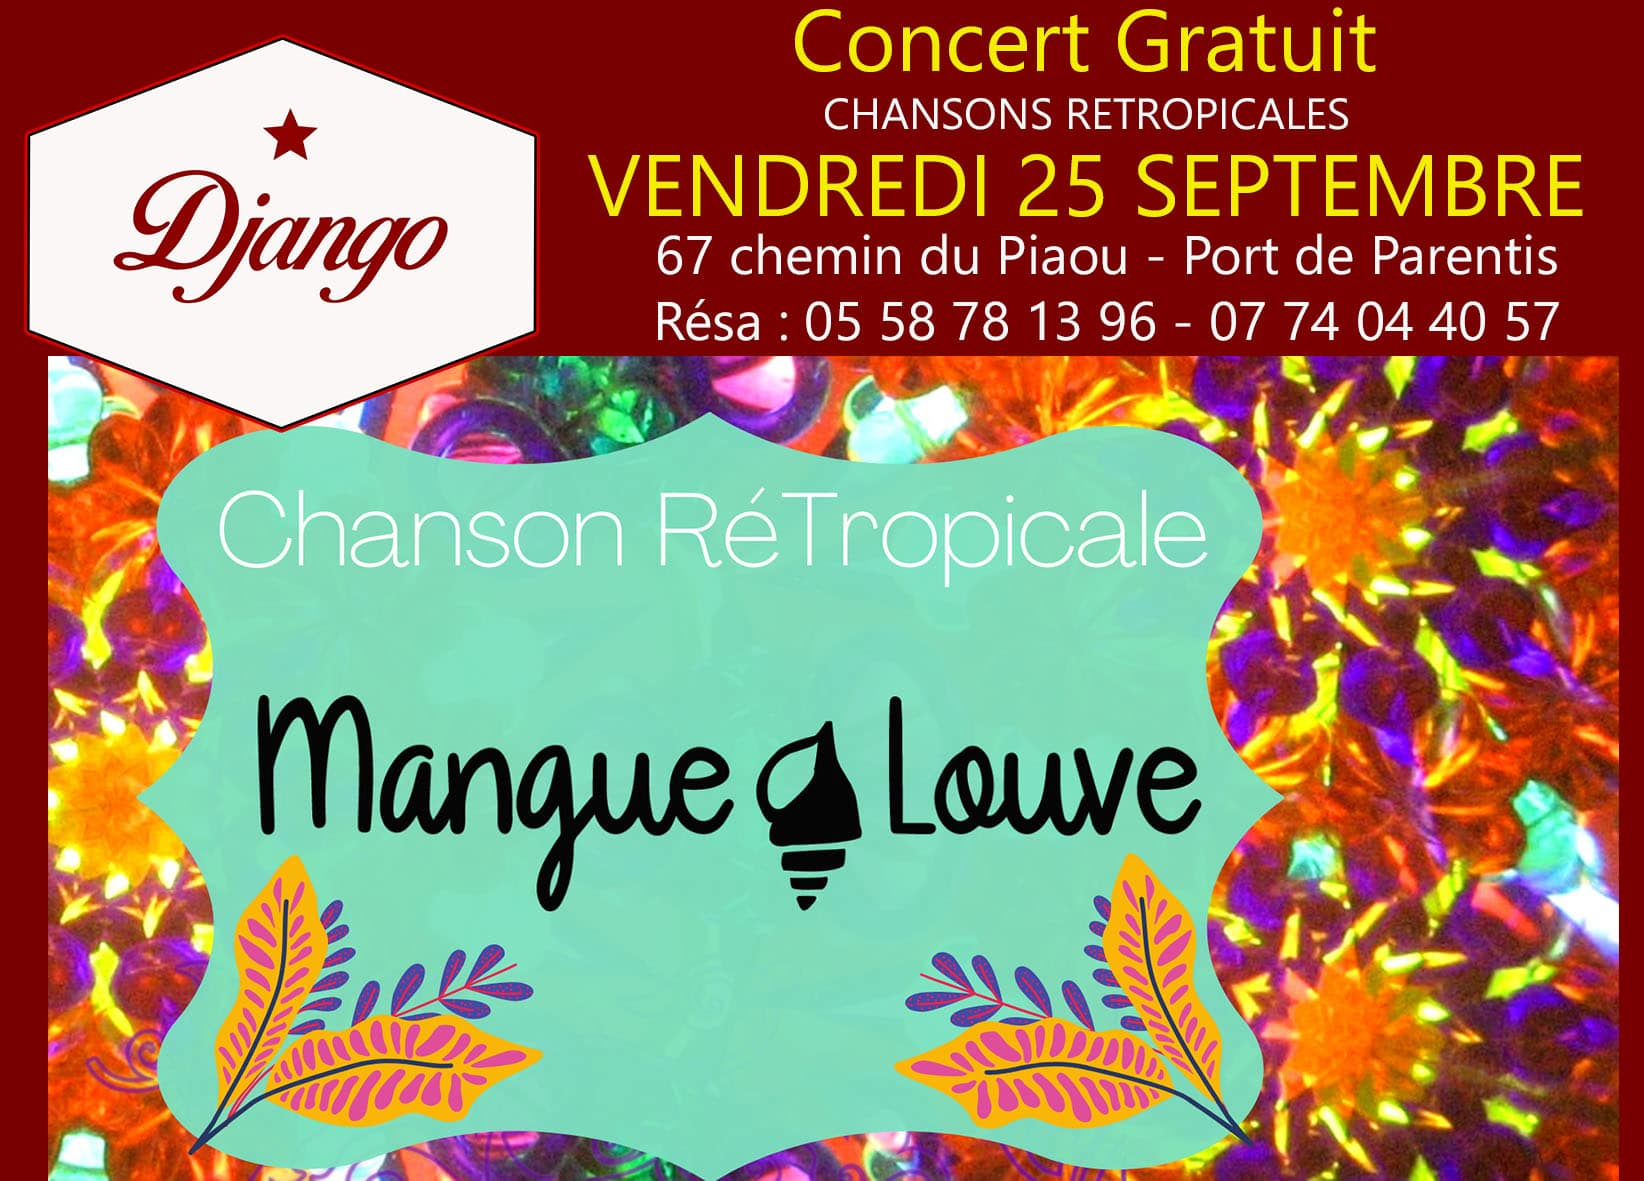 Concert : MANGUE LOUVE Chansons Retropicales